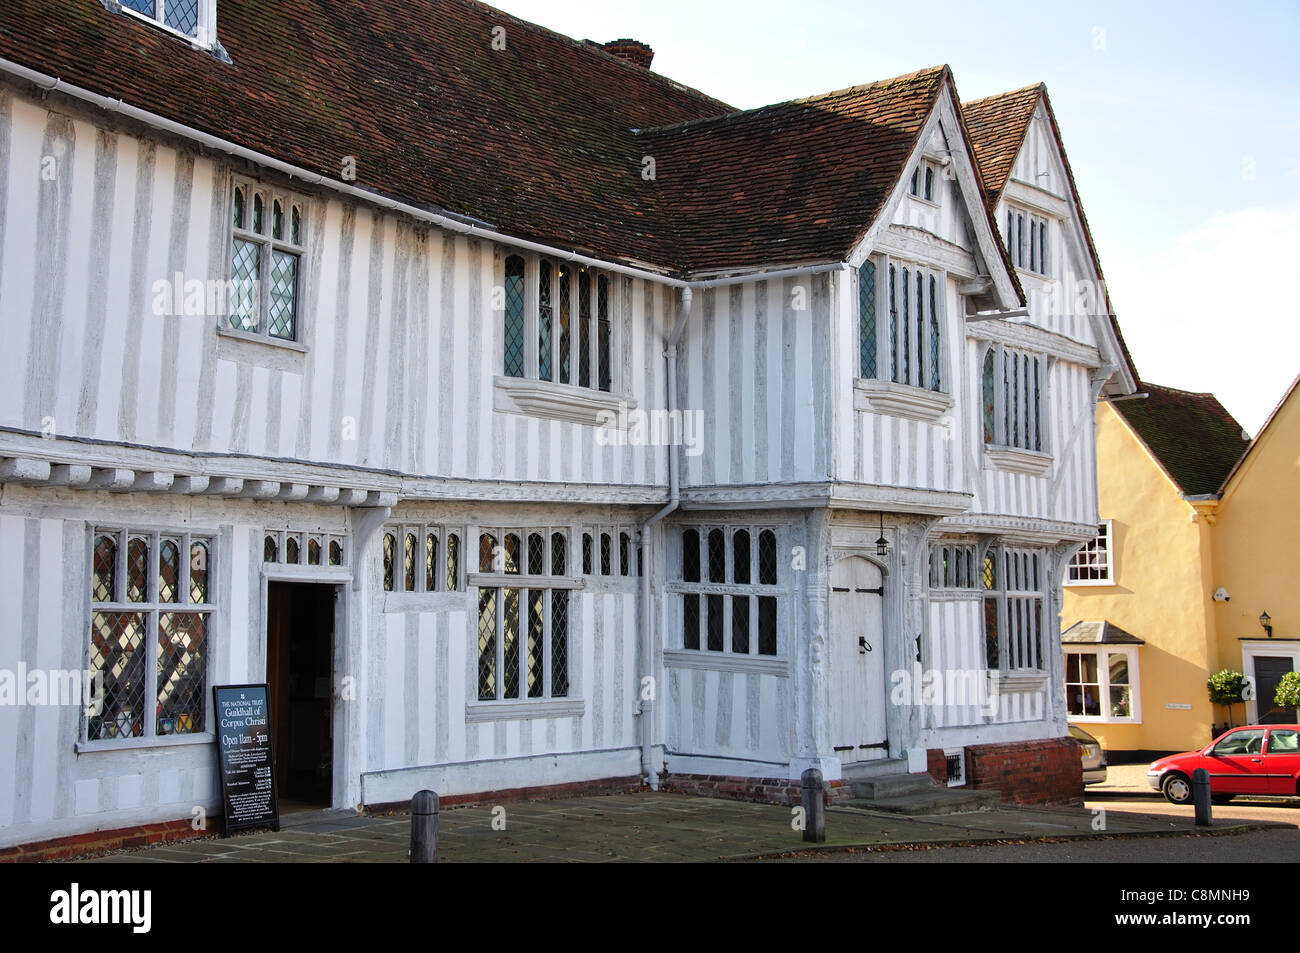 16th century Guildhall of Corpus Christi, Market Square, Lavenham, Suffolk, England, United Kingdom - Stock Image